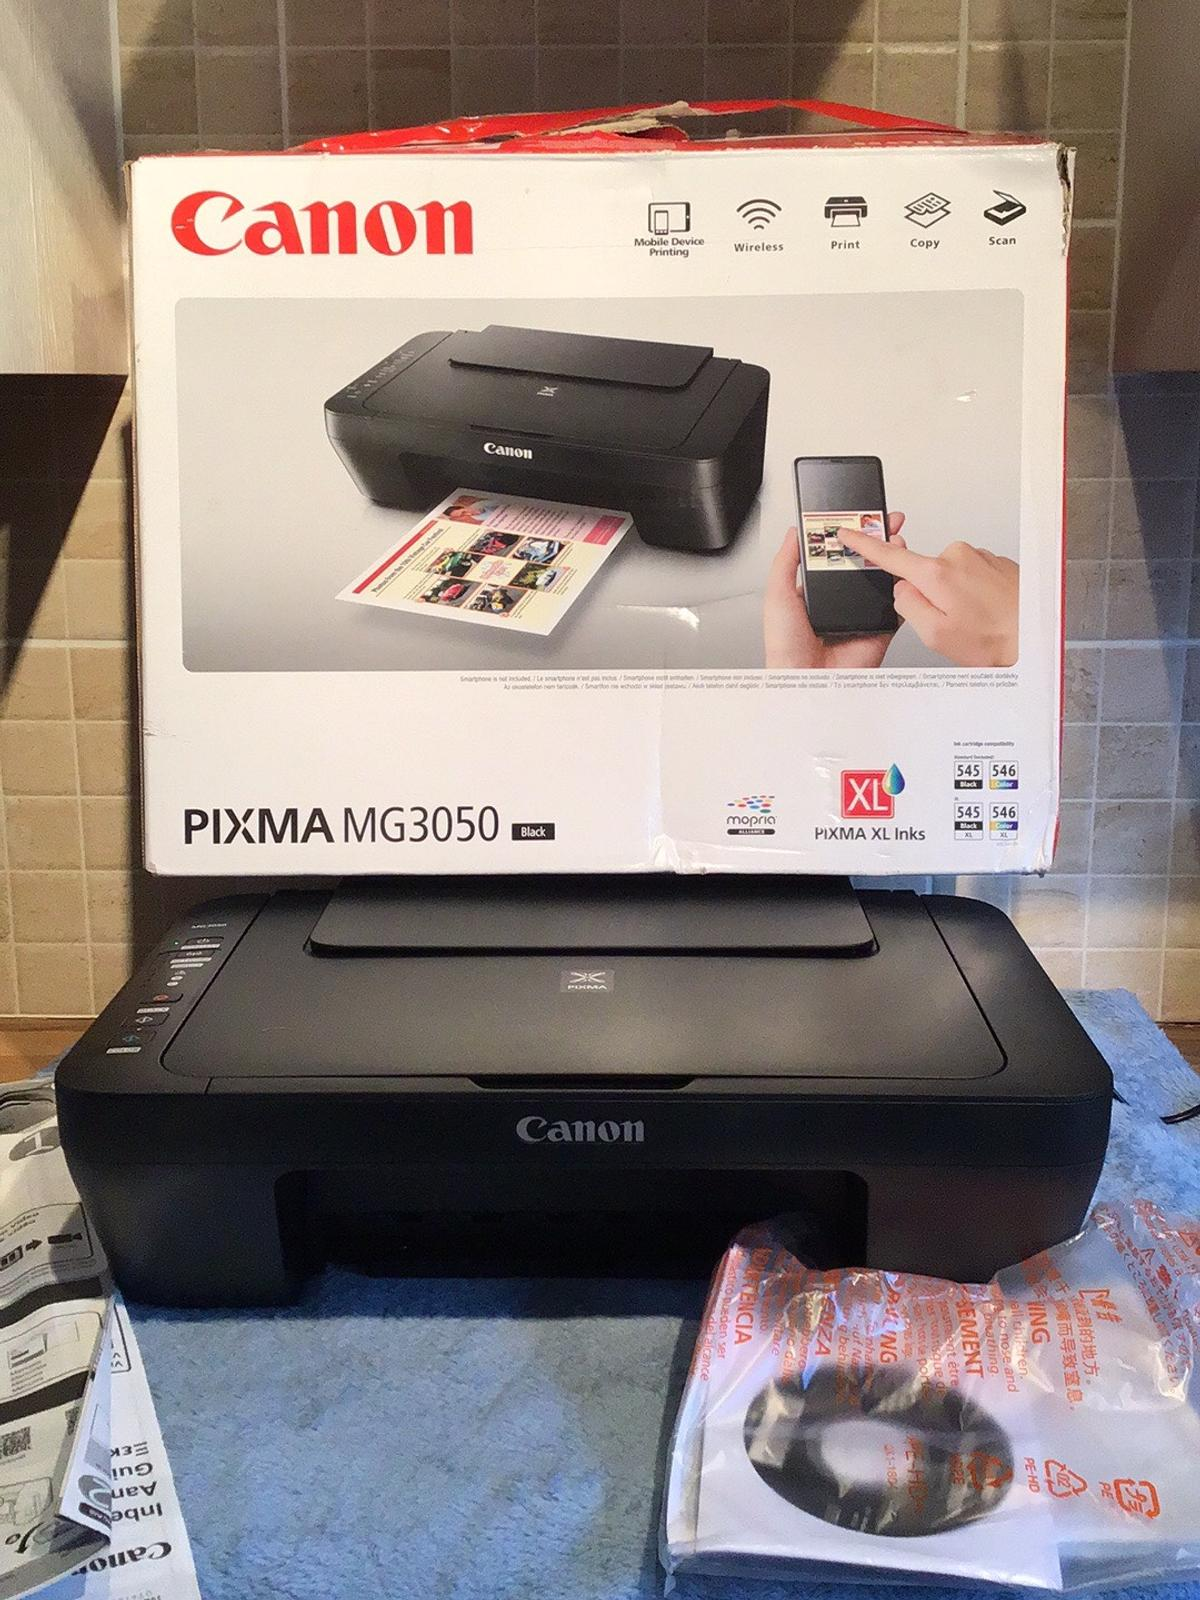 Canon Pixma Mg3050 Wireless Printer Scanner In Dn6 Doncaster For 25 00 For Sale Shpock